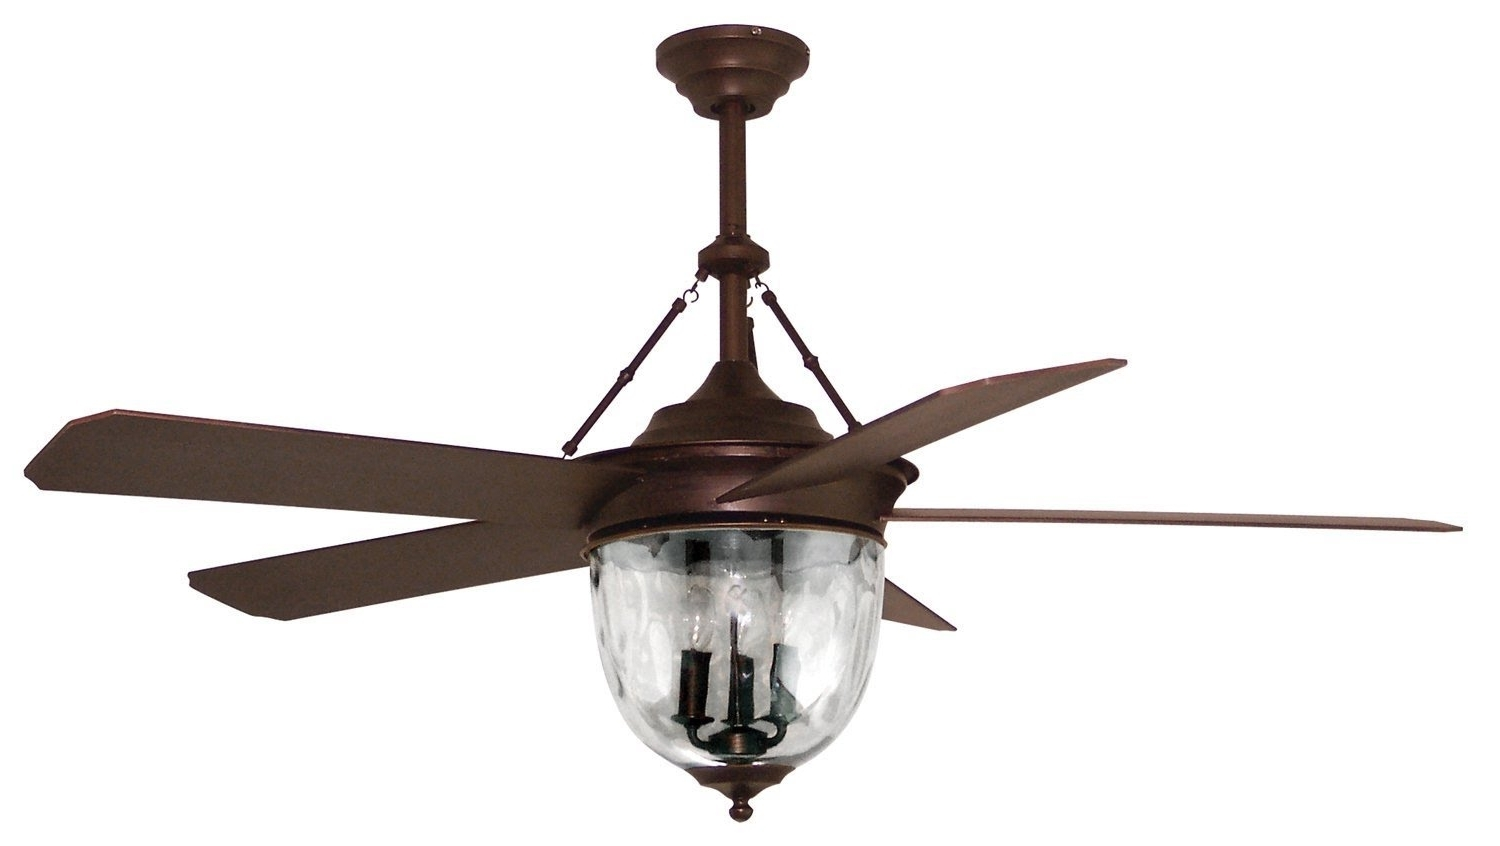 Most Recently Released Outdoor Ceiling Fan With Light And Remote Fresh Lowes Ceiling Fans Regarding Outdoor Ceiling Fans With Lights And Remote Control (View 15 of 20)